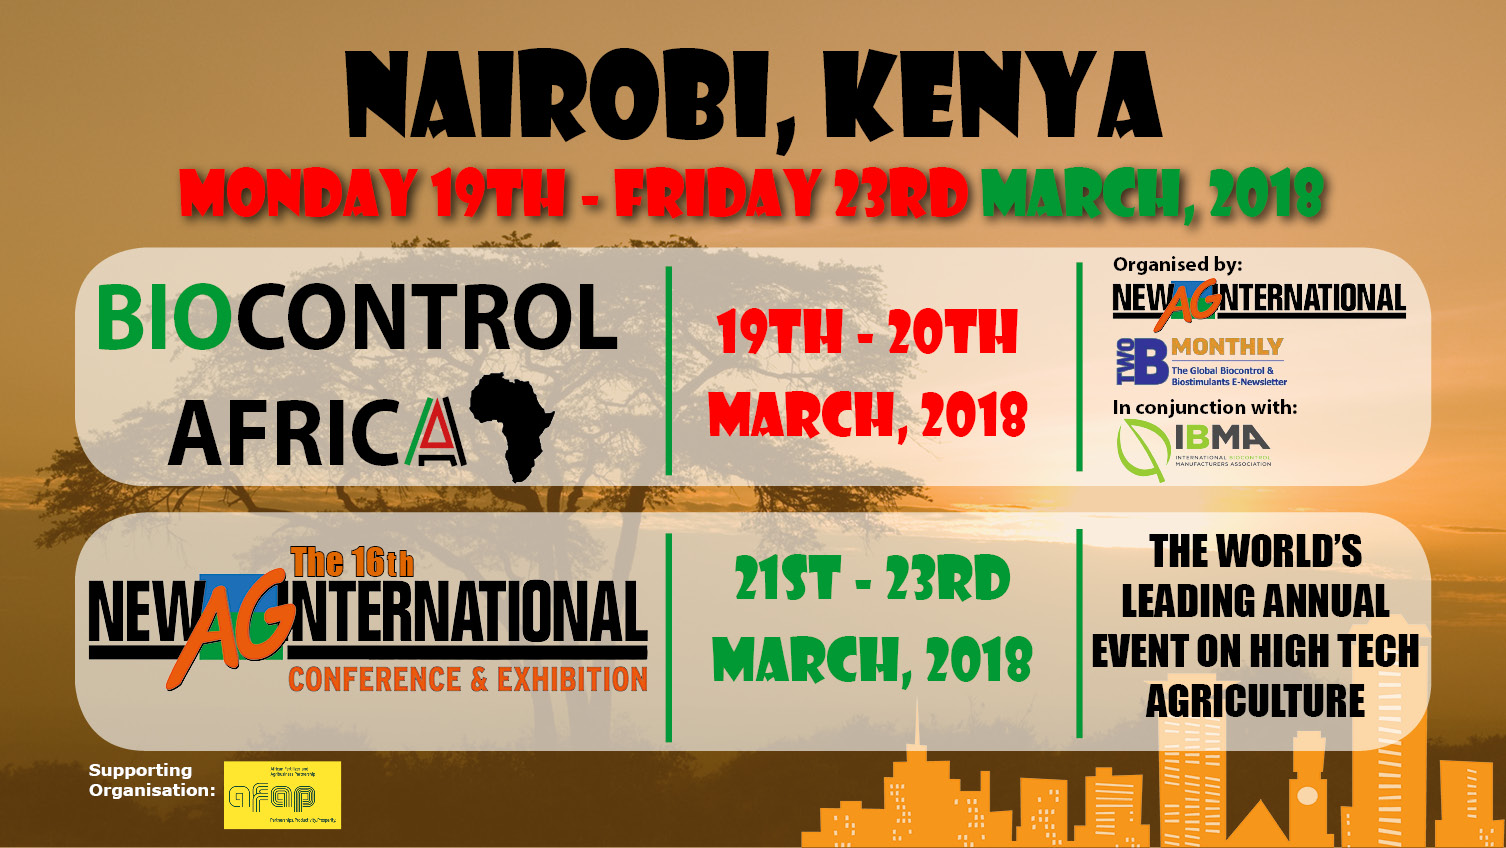 New Ag International Conference